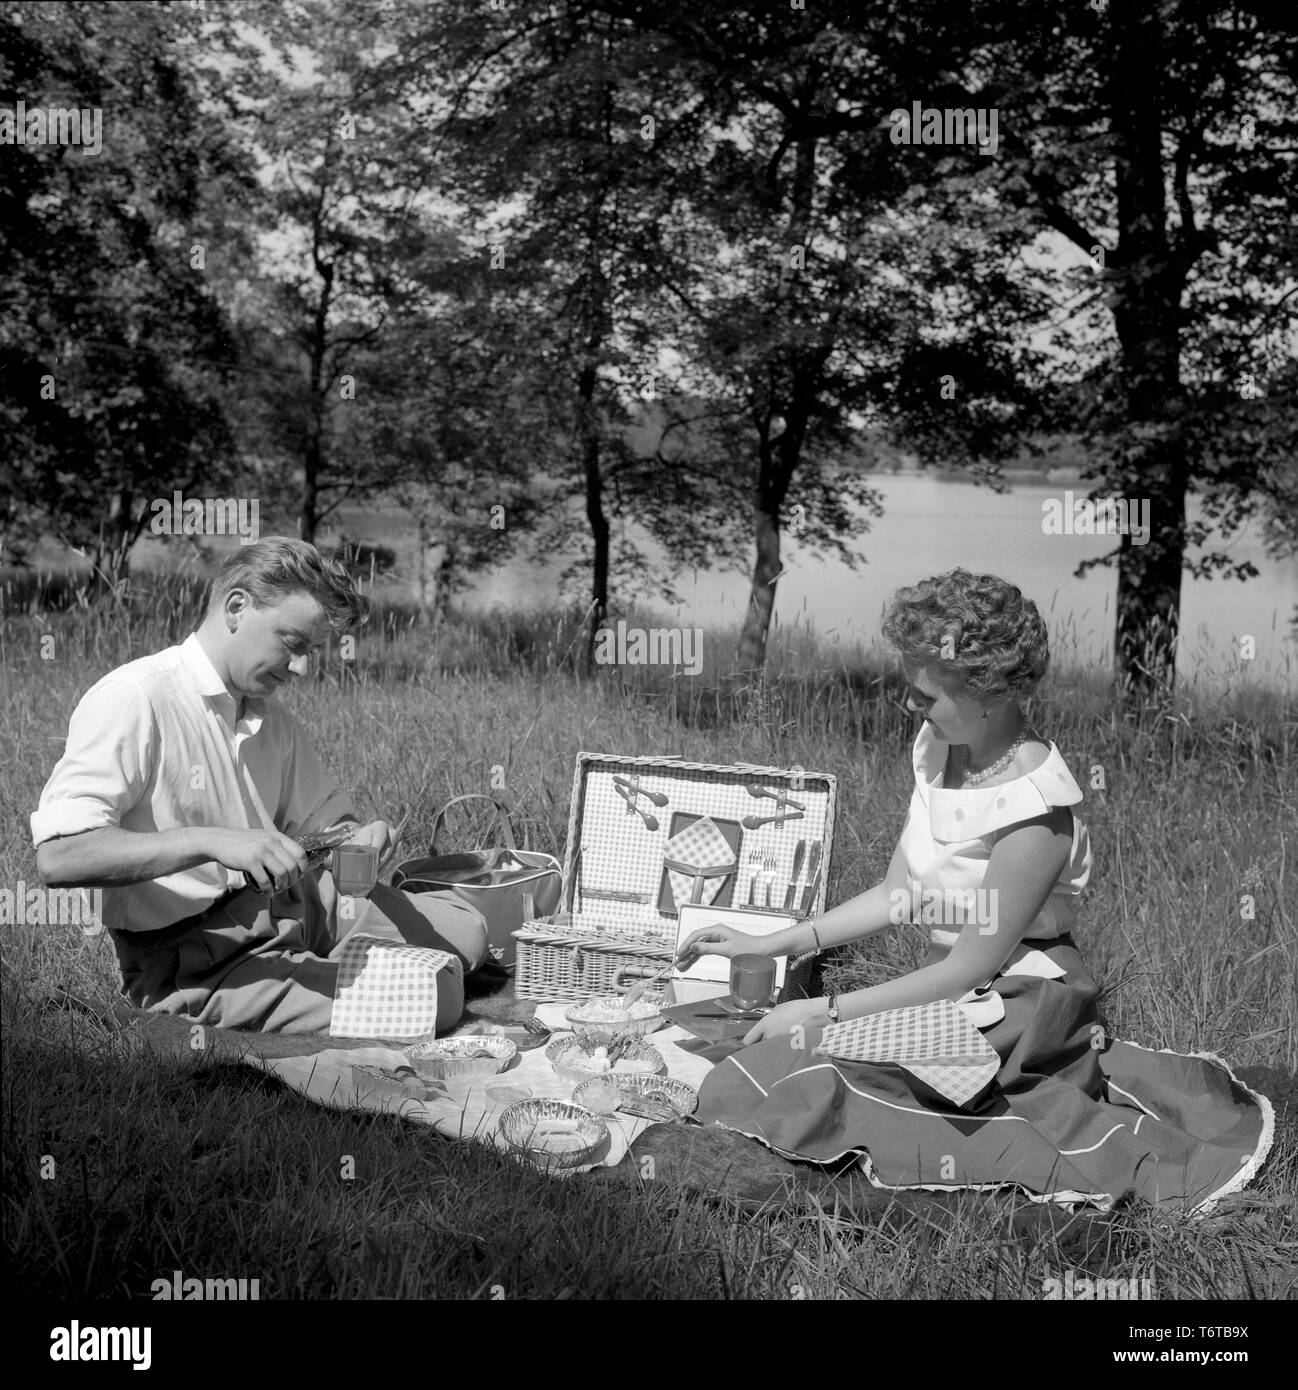 Picnic in the 1950s. A young couple are enjoying a sunny day. They have packed their food and drinks in the practical picnic case and are sitting on a blanket in the sun eating and drinking. Sweden 1956 Stock Photo